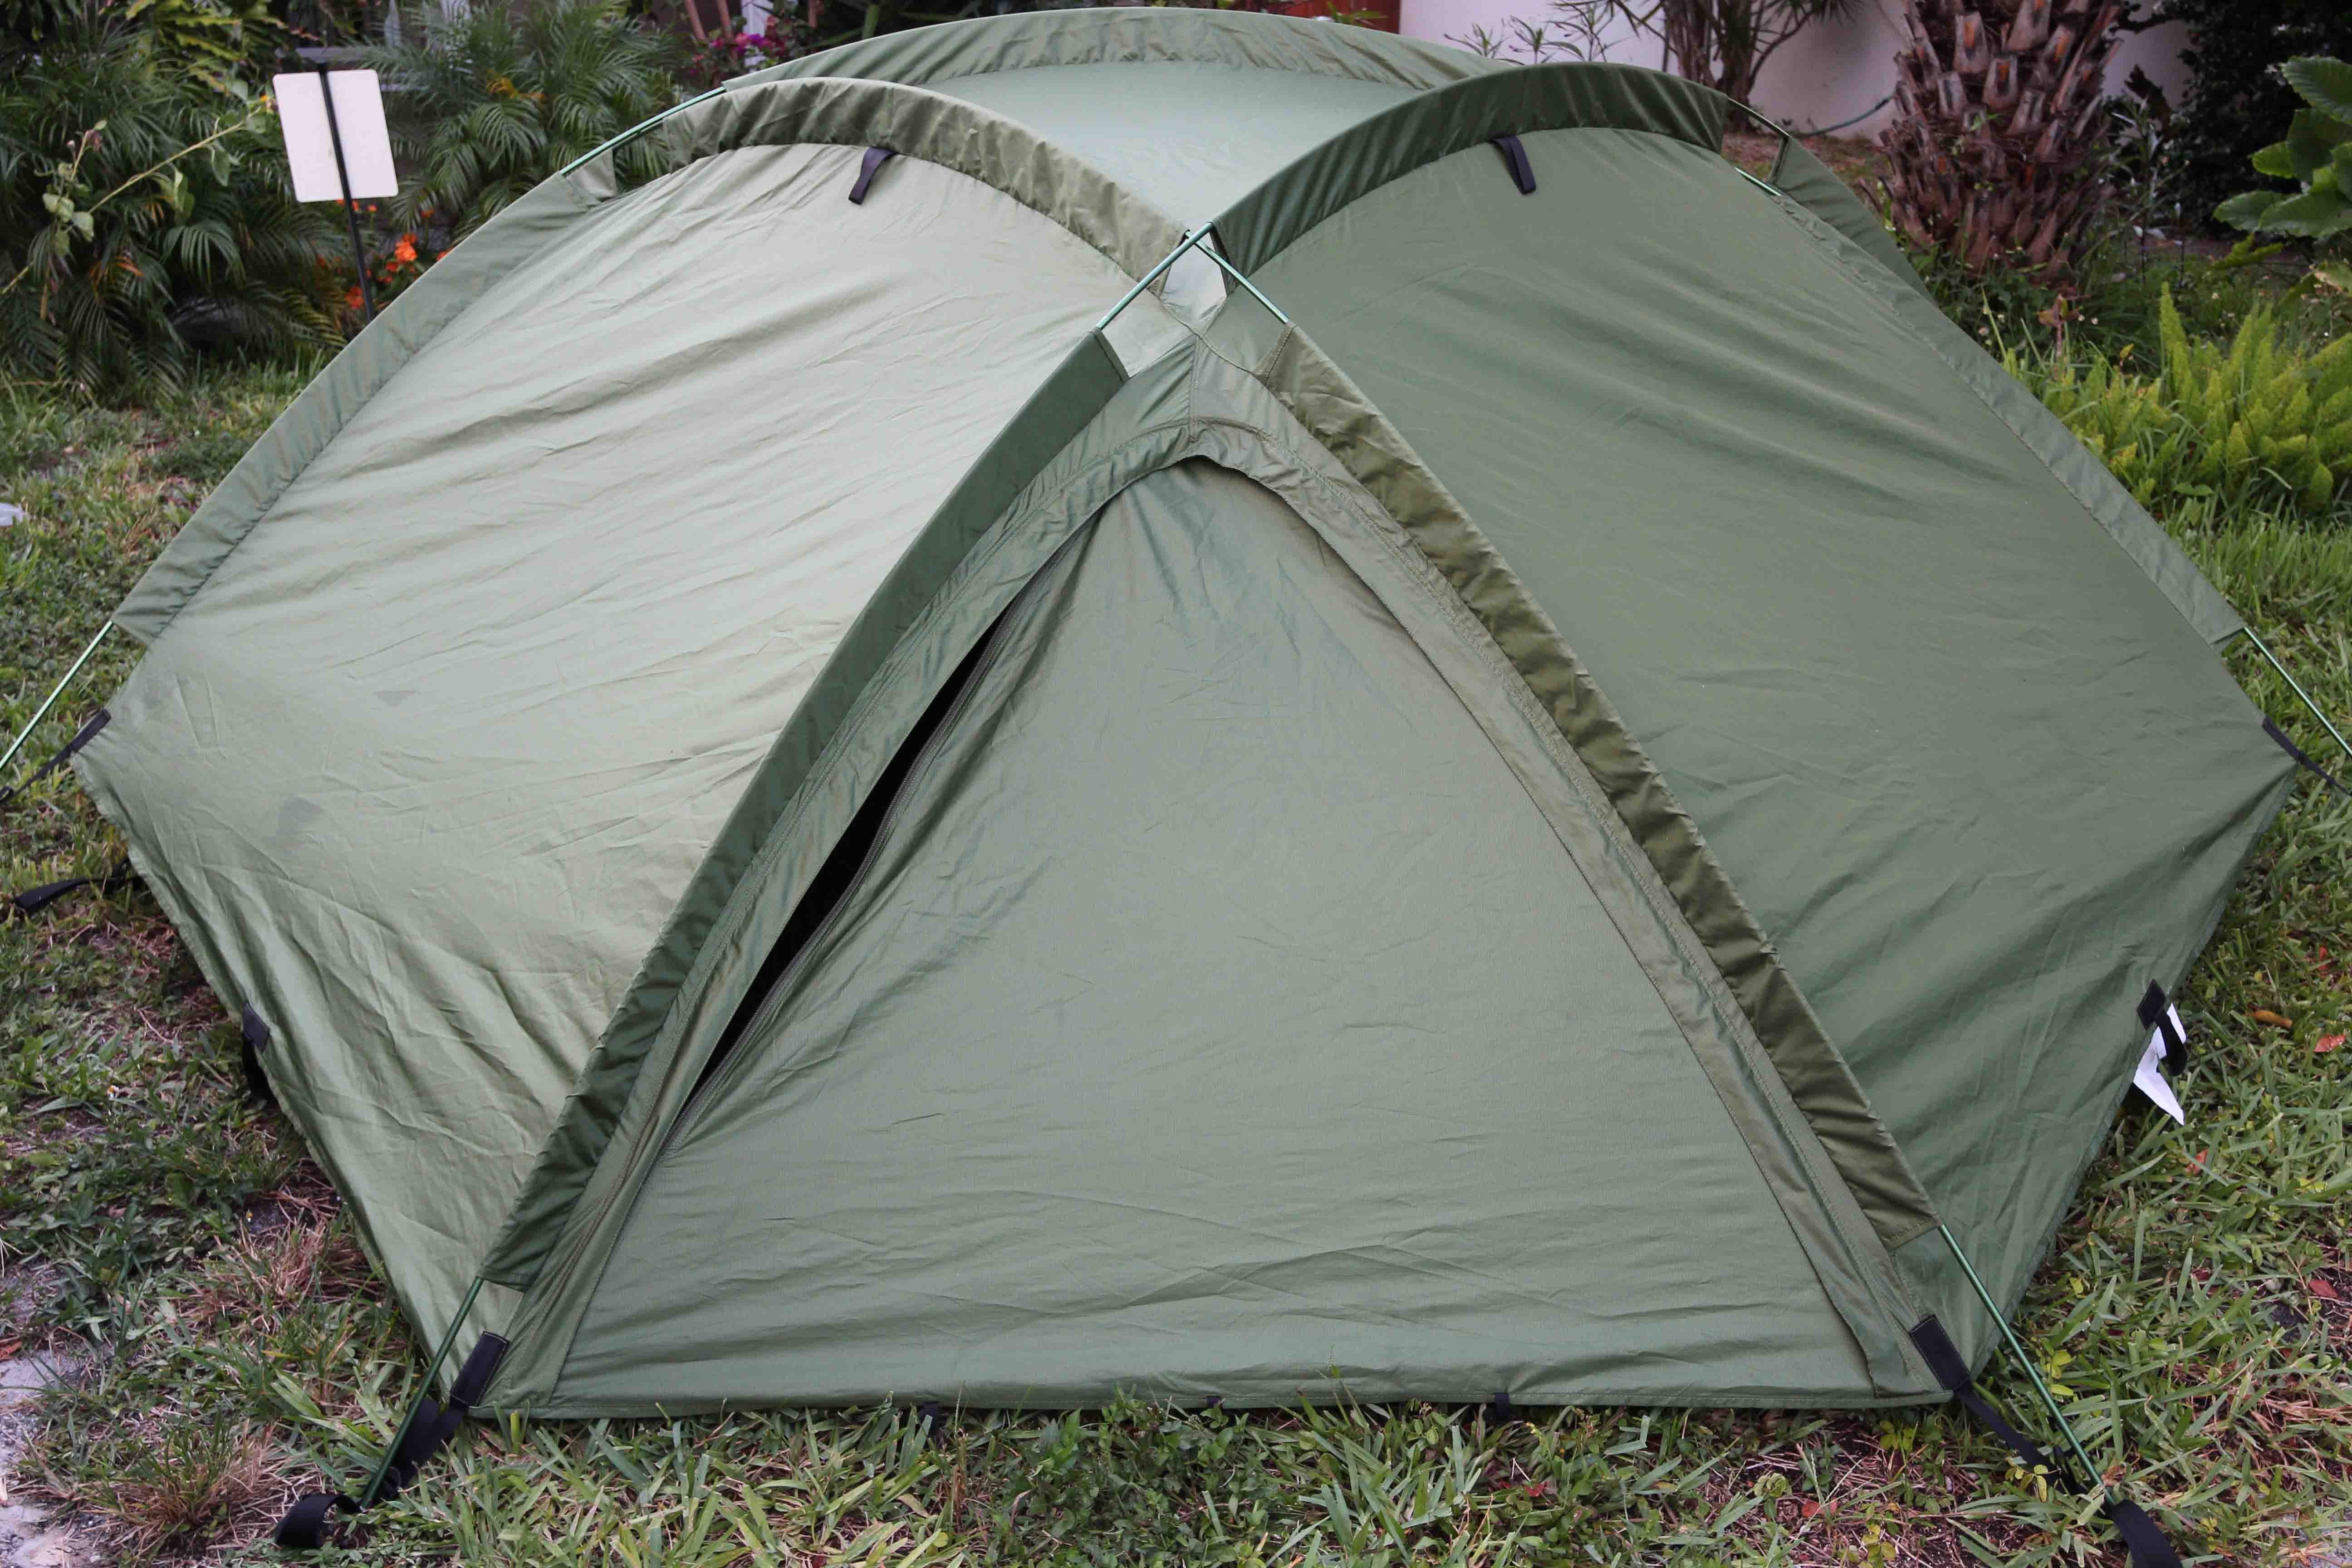 Military 4 Man Extreme Cold Weather Tent (ECWT) Replacement Rainfly - Hanku0027s Surplus & Military 4 Man Extreme Cold Weather Tent (ECWT) Replacement ...